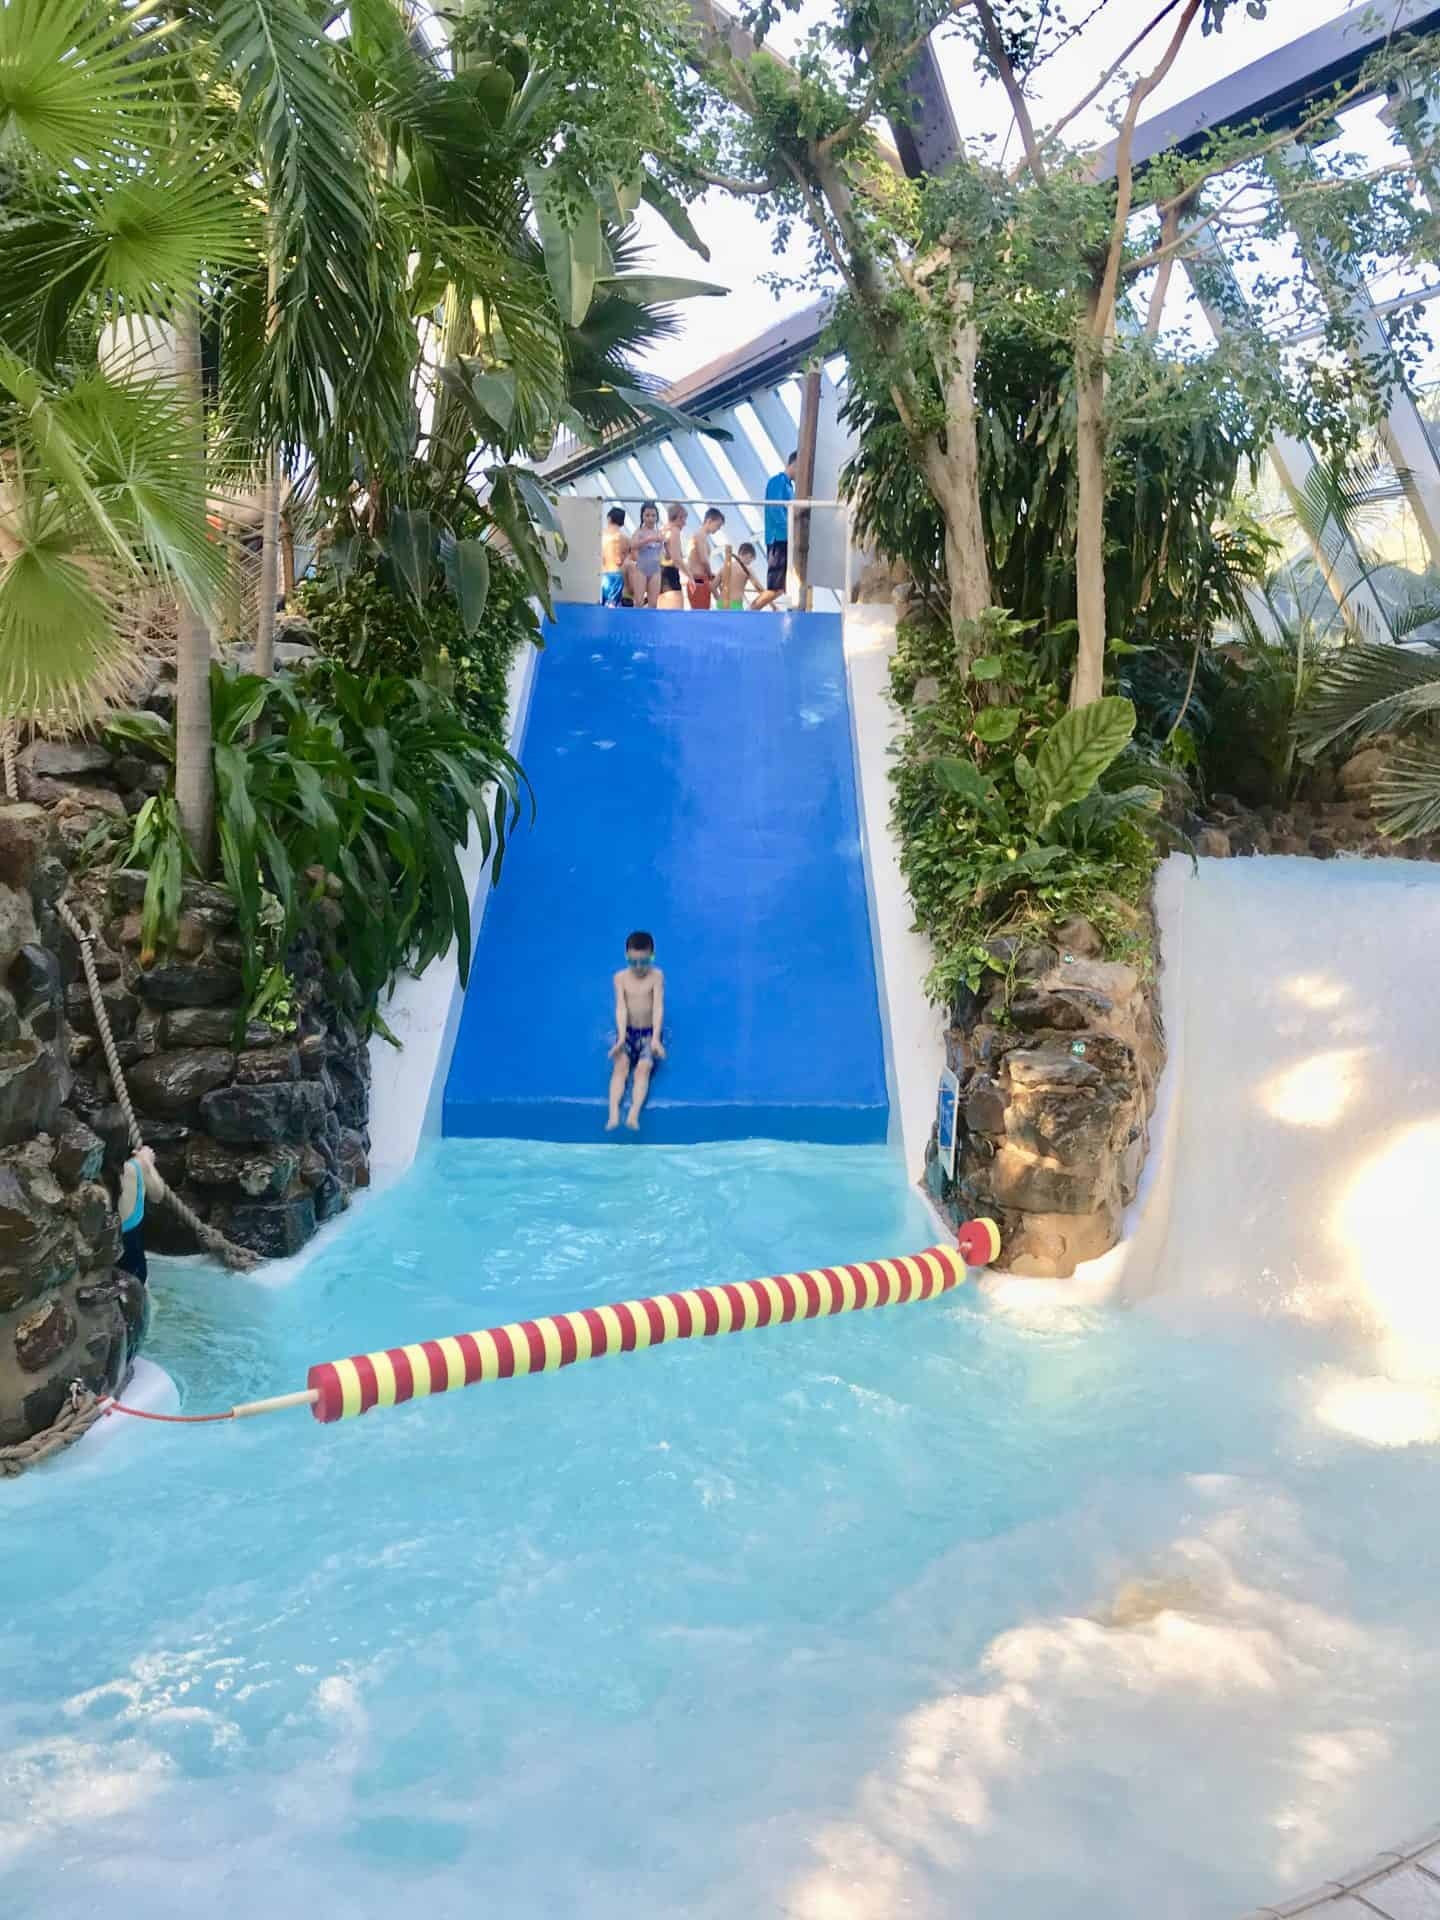 B coming down the steep slide at Subtropical Paradise